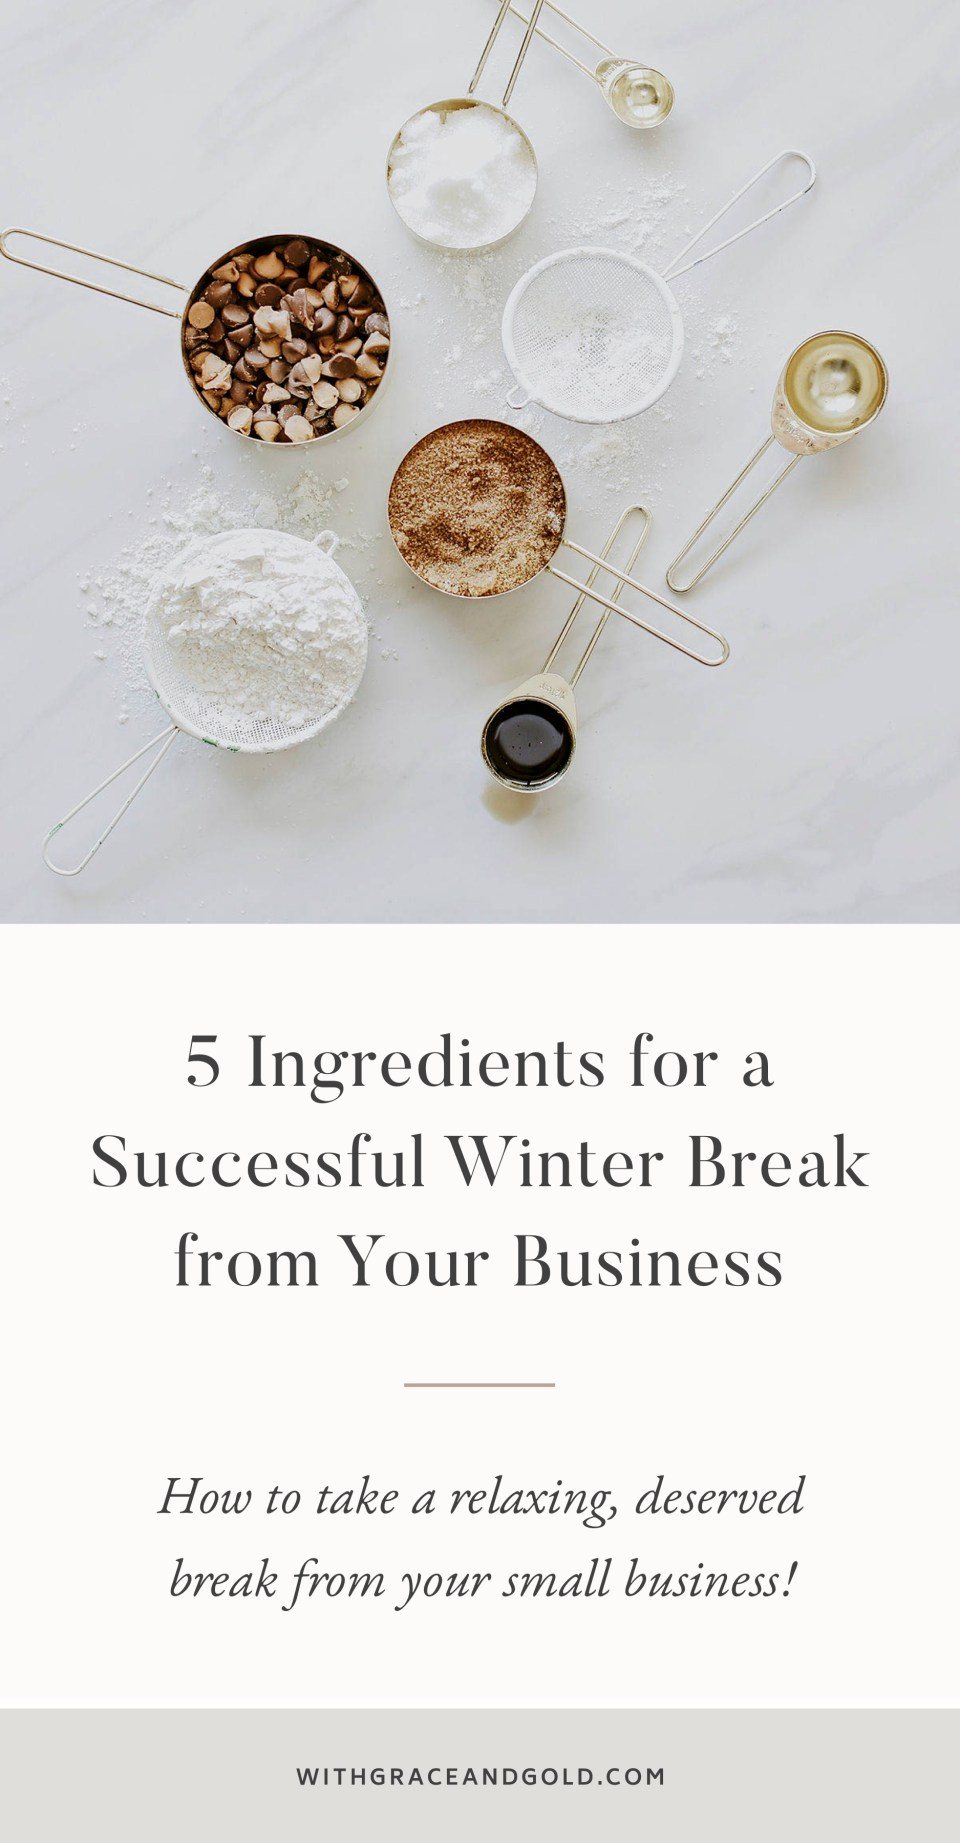 5 Ingredients for a Successful Winter Break from Your Business